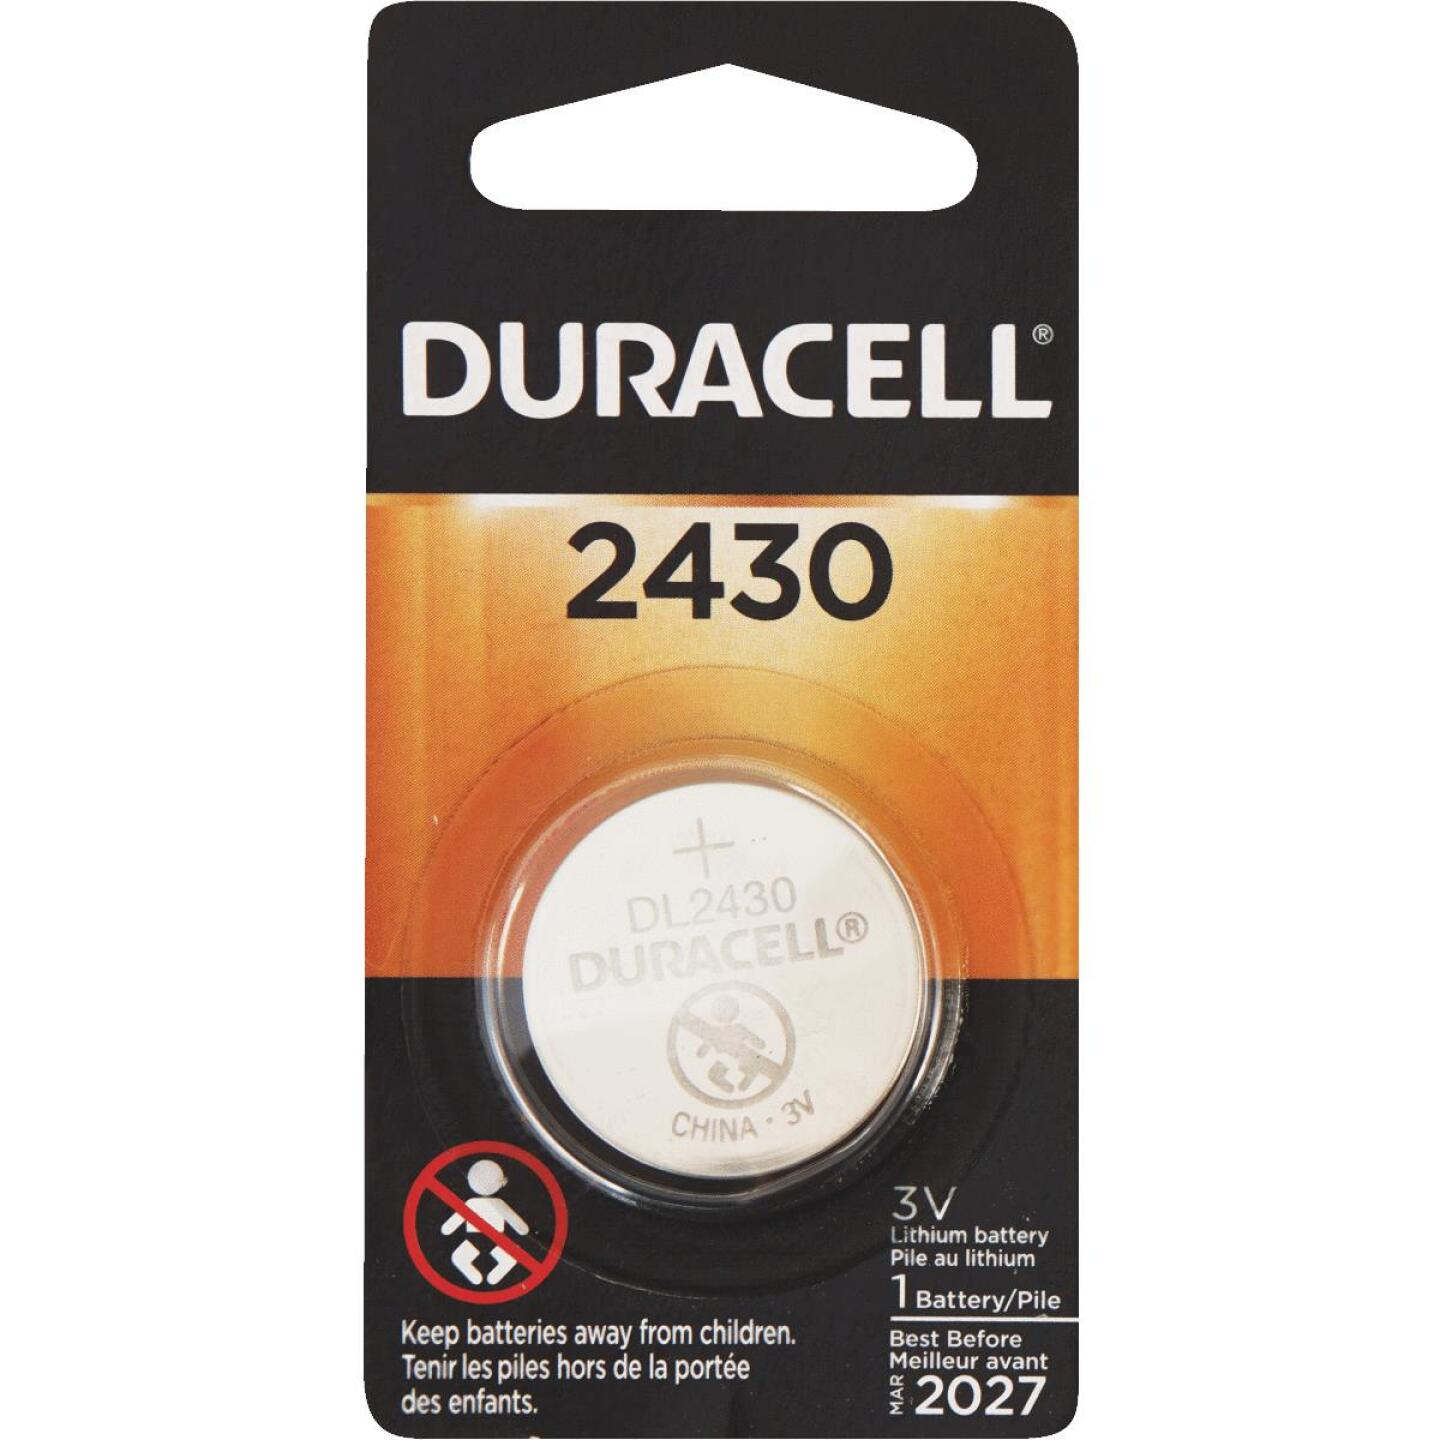 Duracell 2430 Lithium Coin Cell Battery Image 1